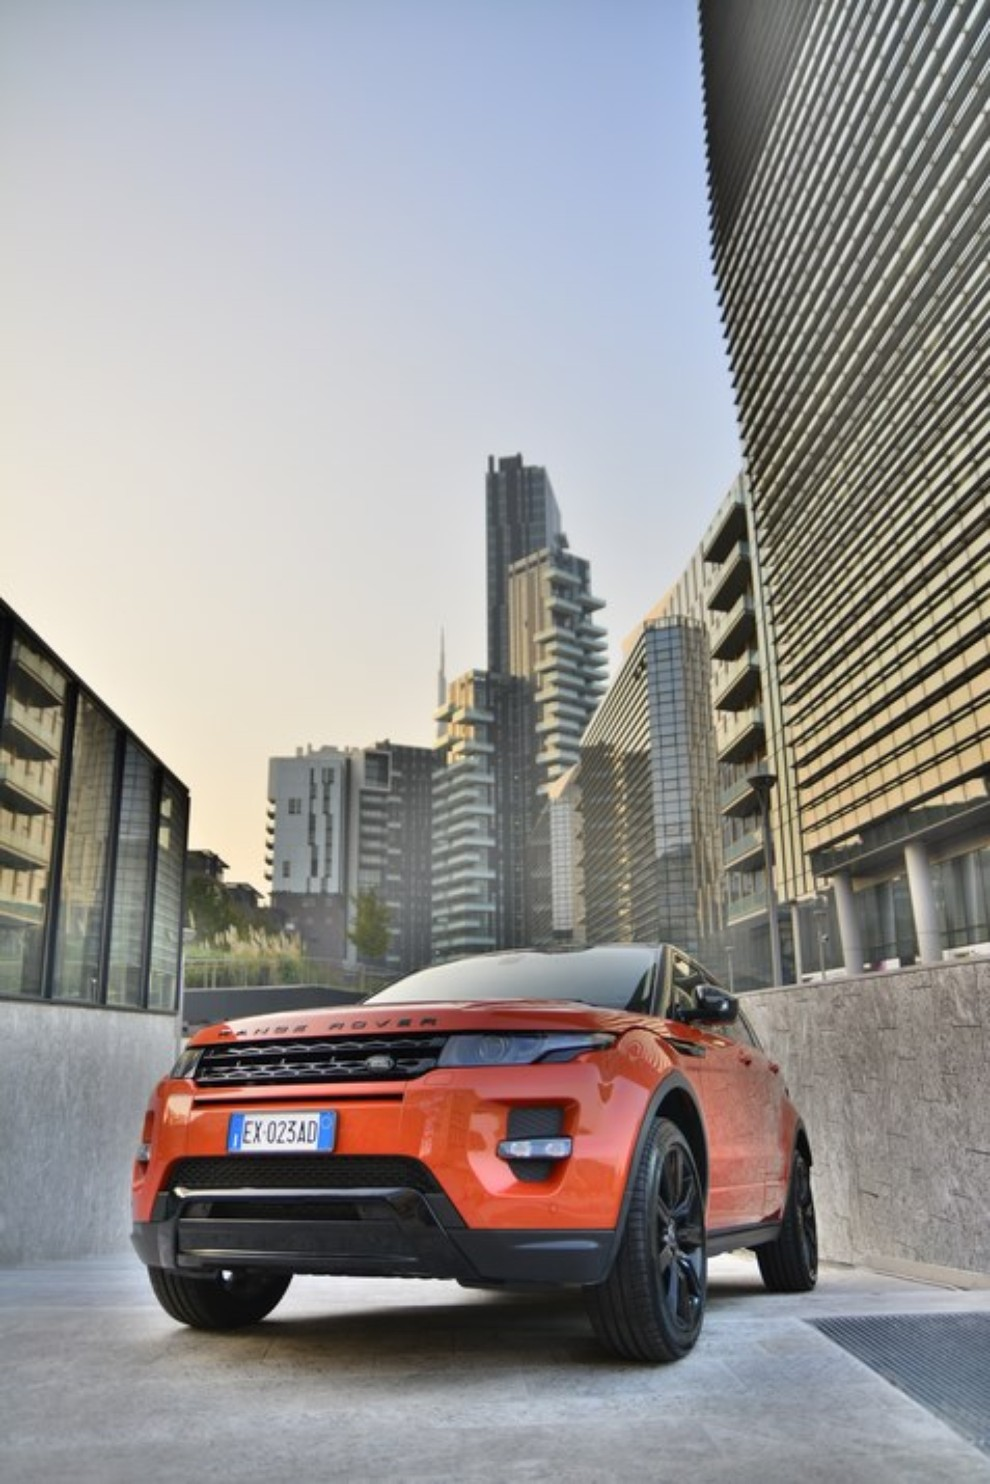 Land Rover New Discovery By Invitation Only Roma – Milano - Foto 9 di 12